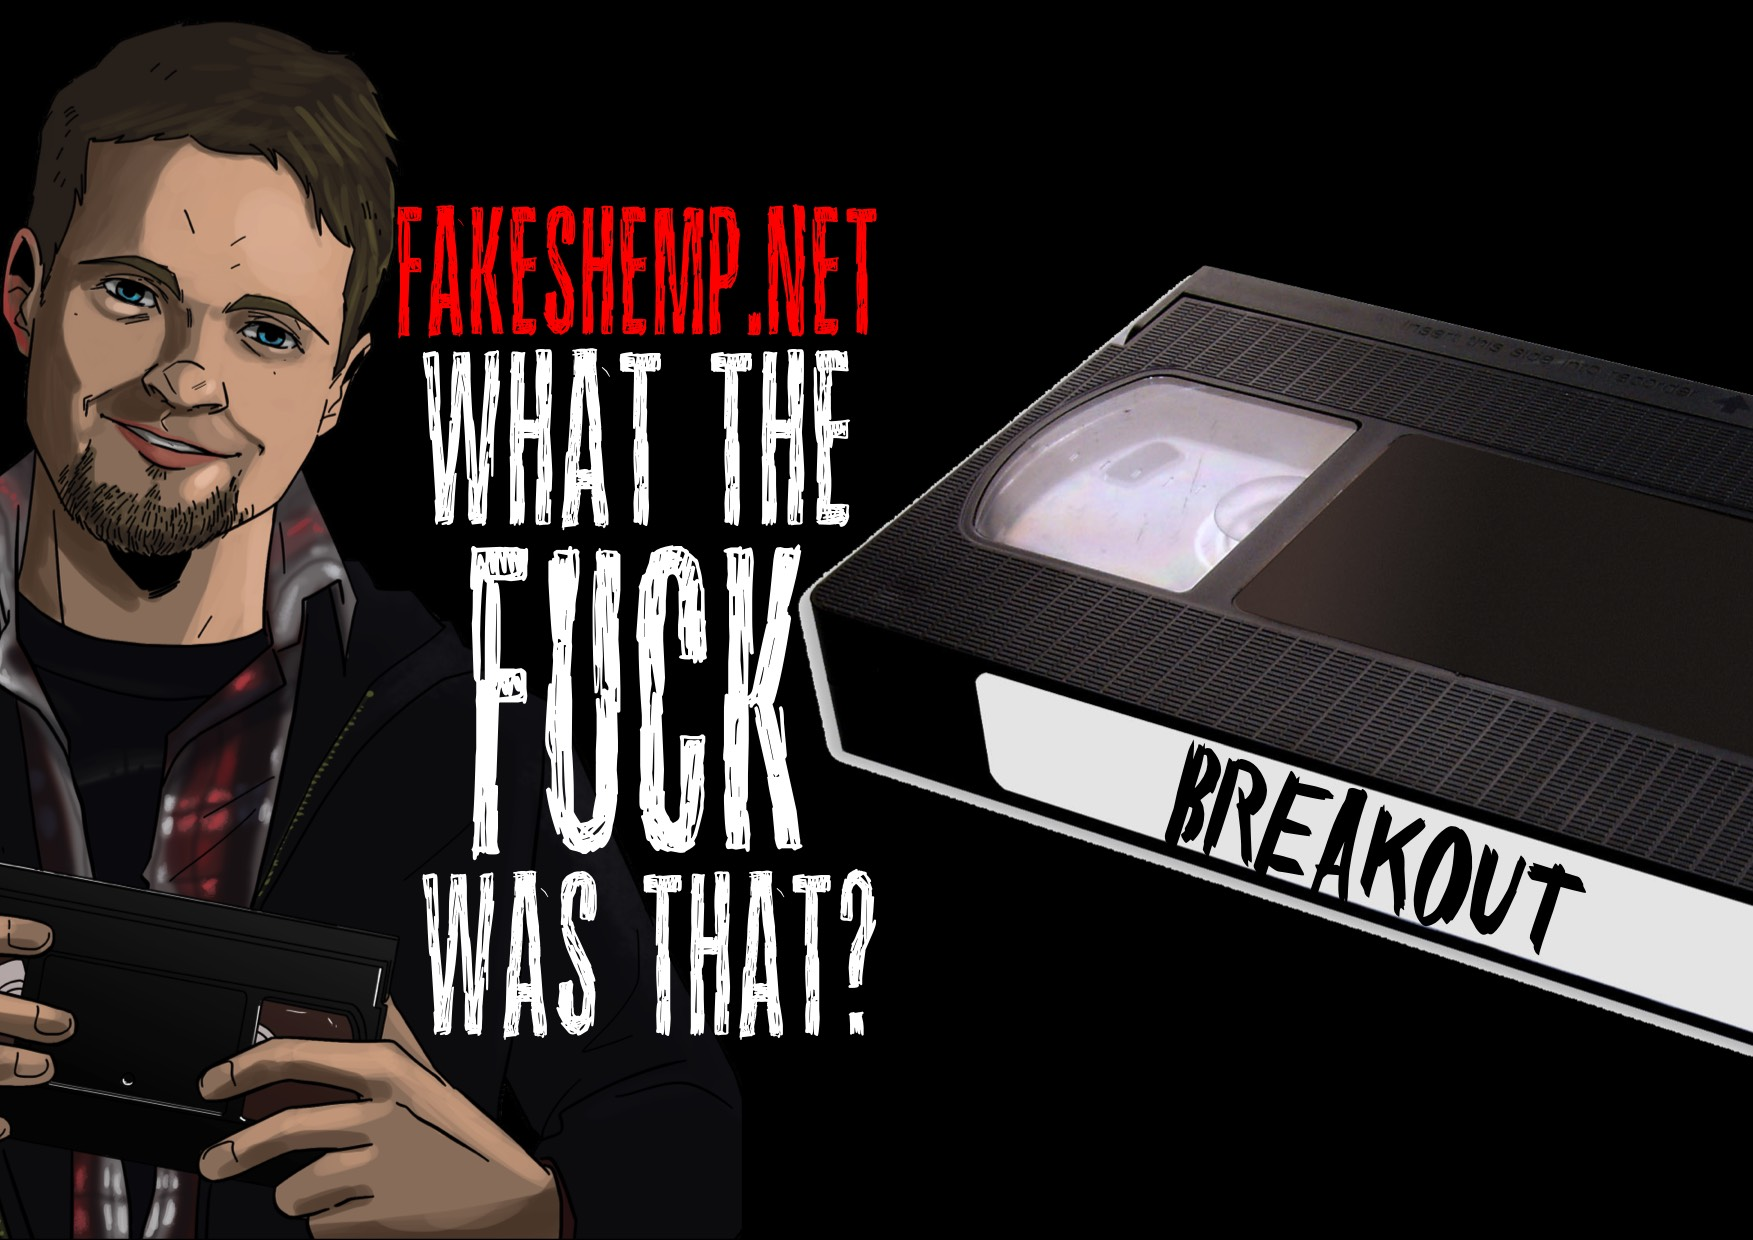 WTF WAS THAT? - Breakout